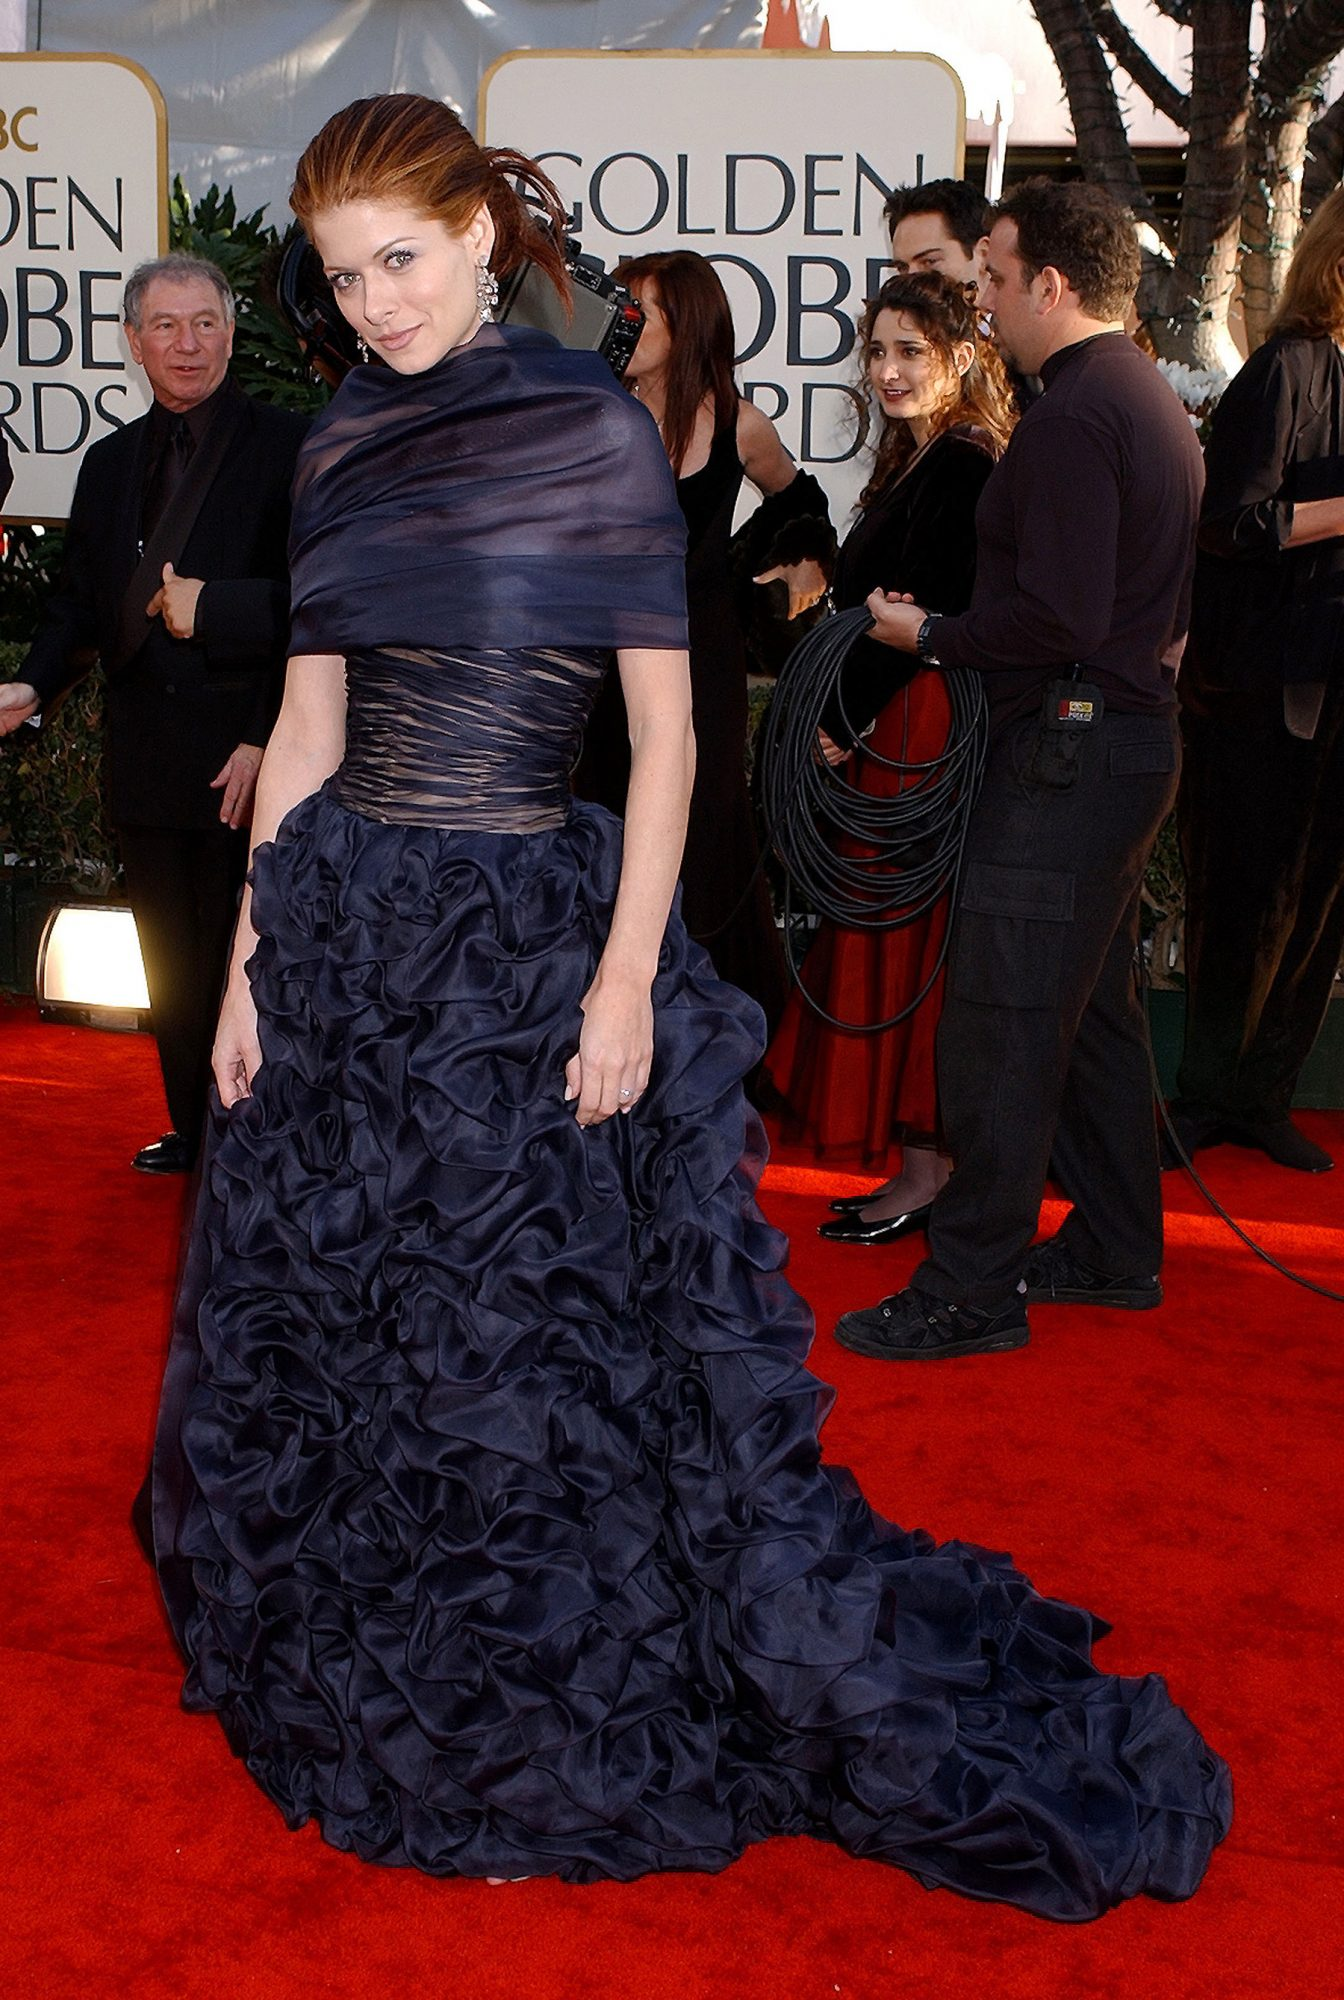 The 59th Annual Golden Globe Awards - Arrivals